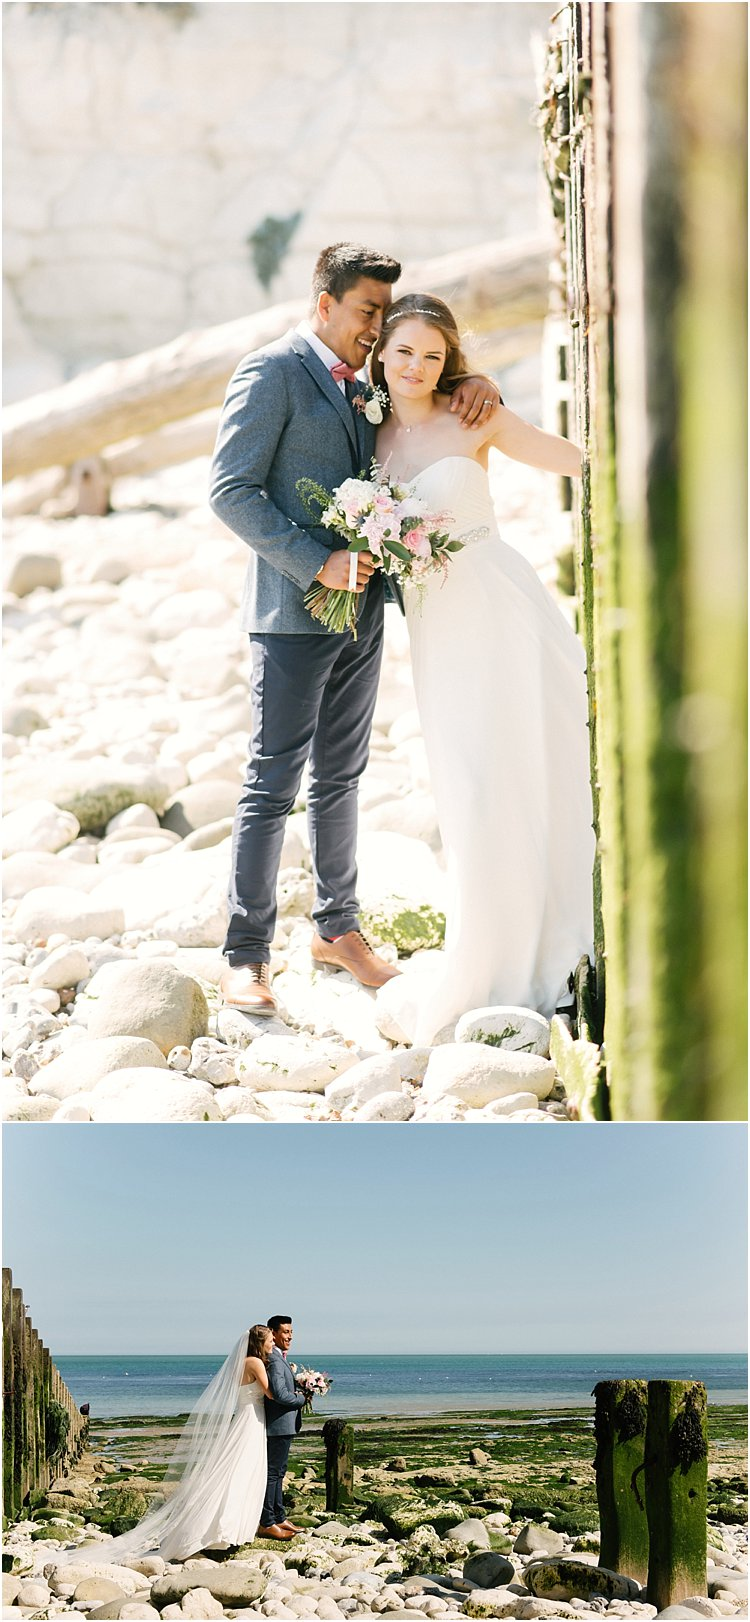 modern-vintage-wedding-eastbourne-multi-cultural-london-lily-sawyer-photo_0000